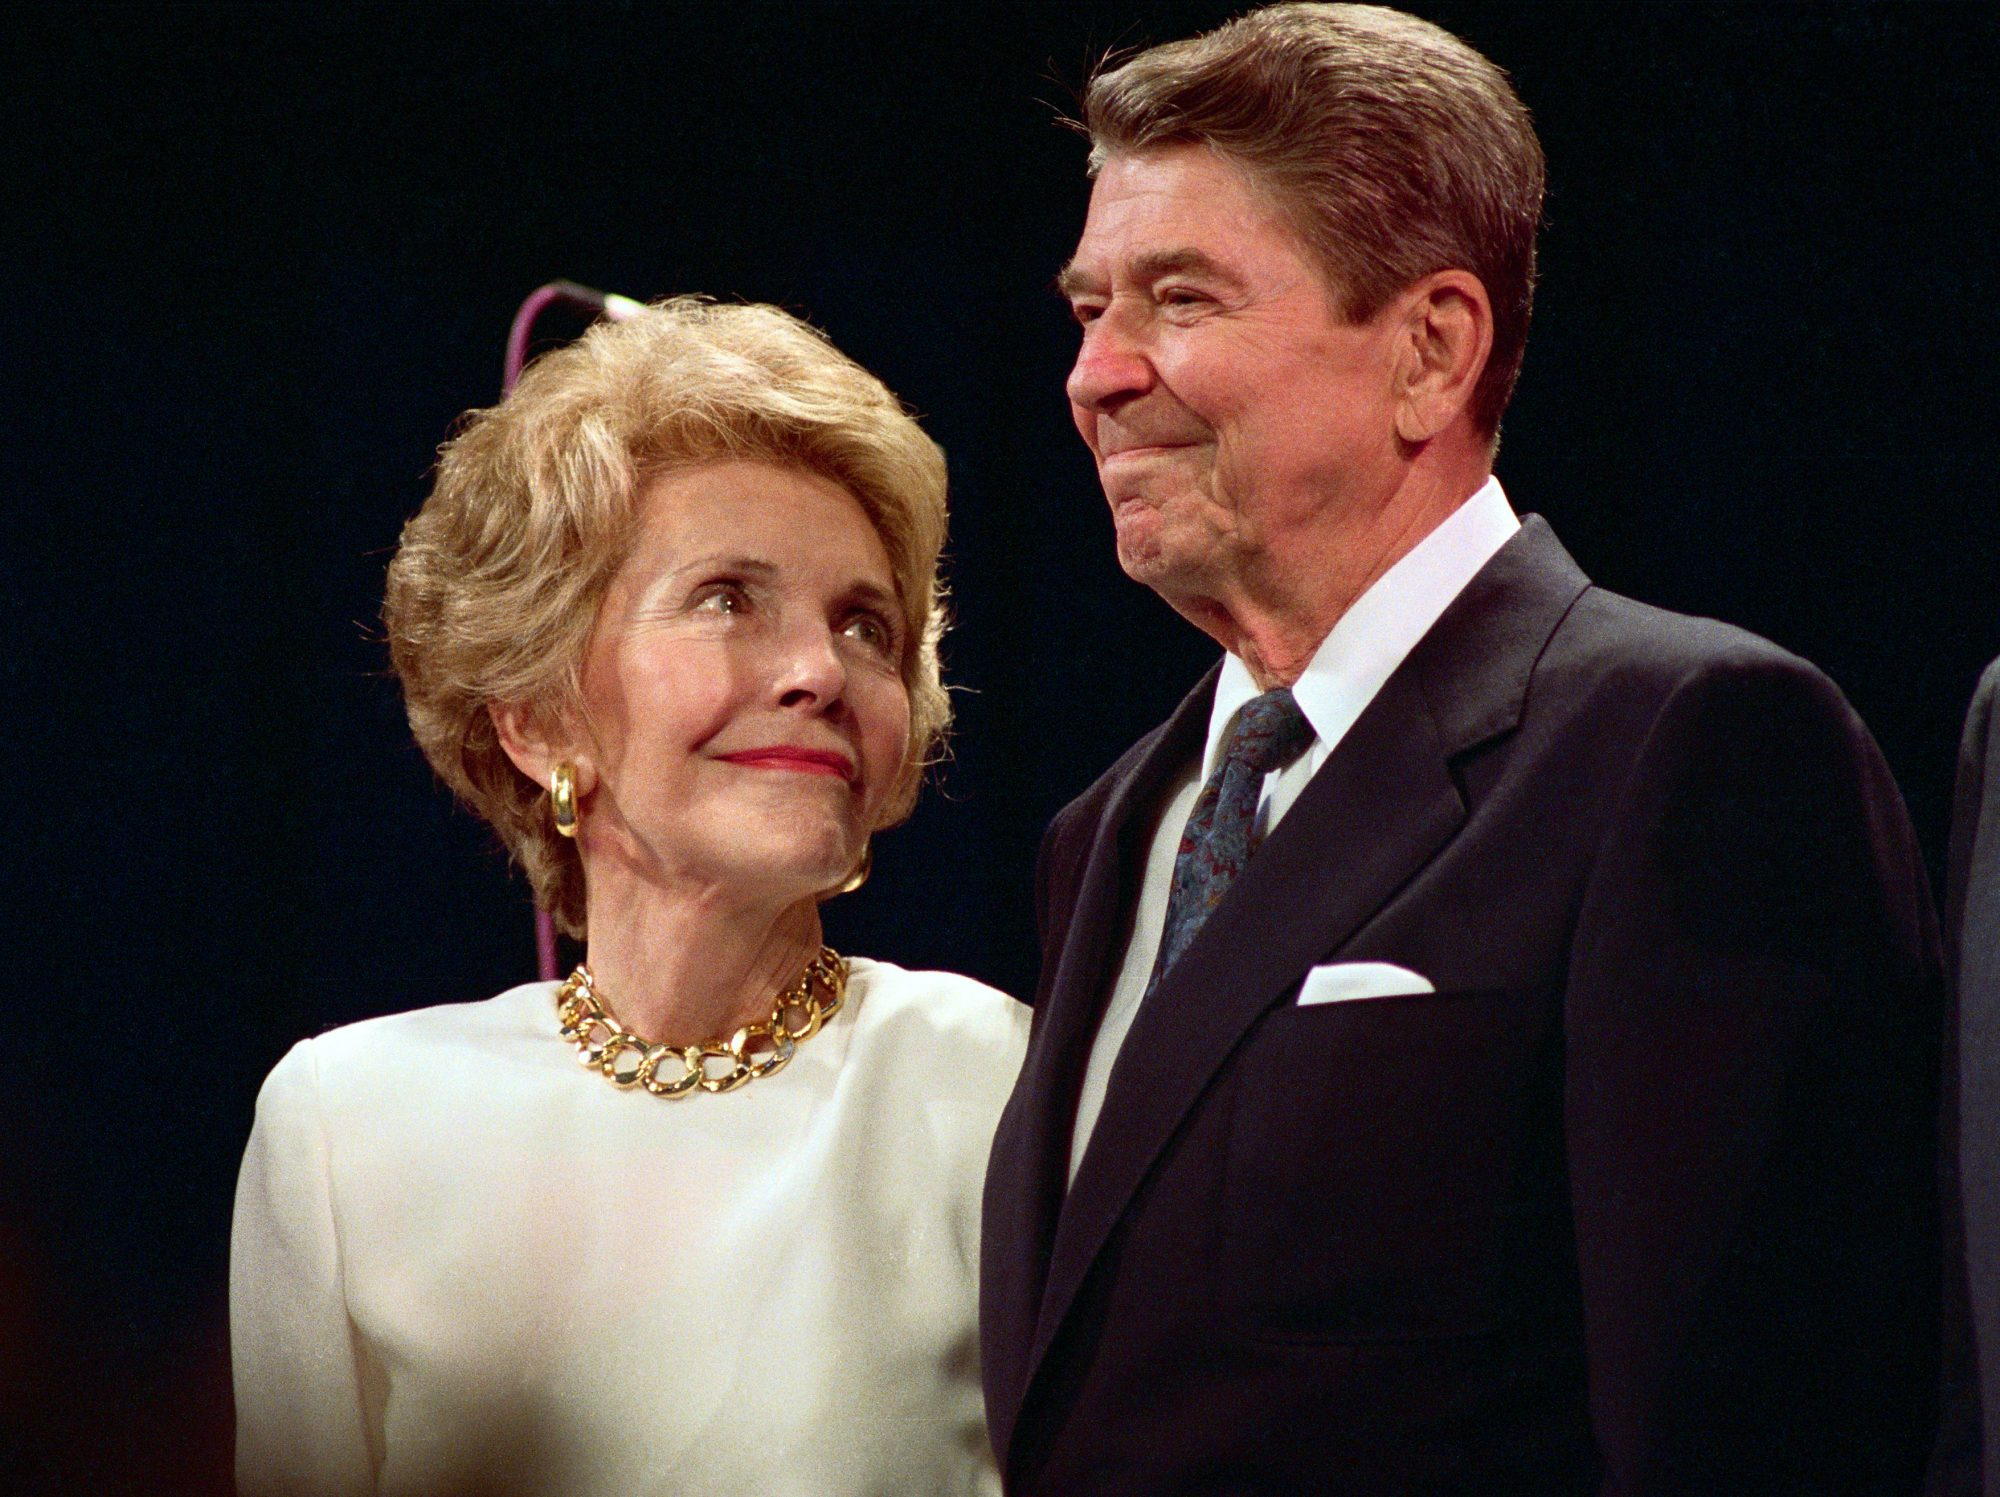 What Nancy Reagan's Biographer Learned in Her 5 Years of Research: She Was 'Long Overdue for a Reassessment'